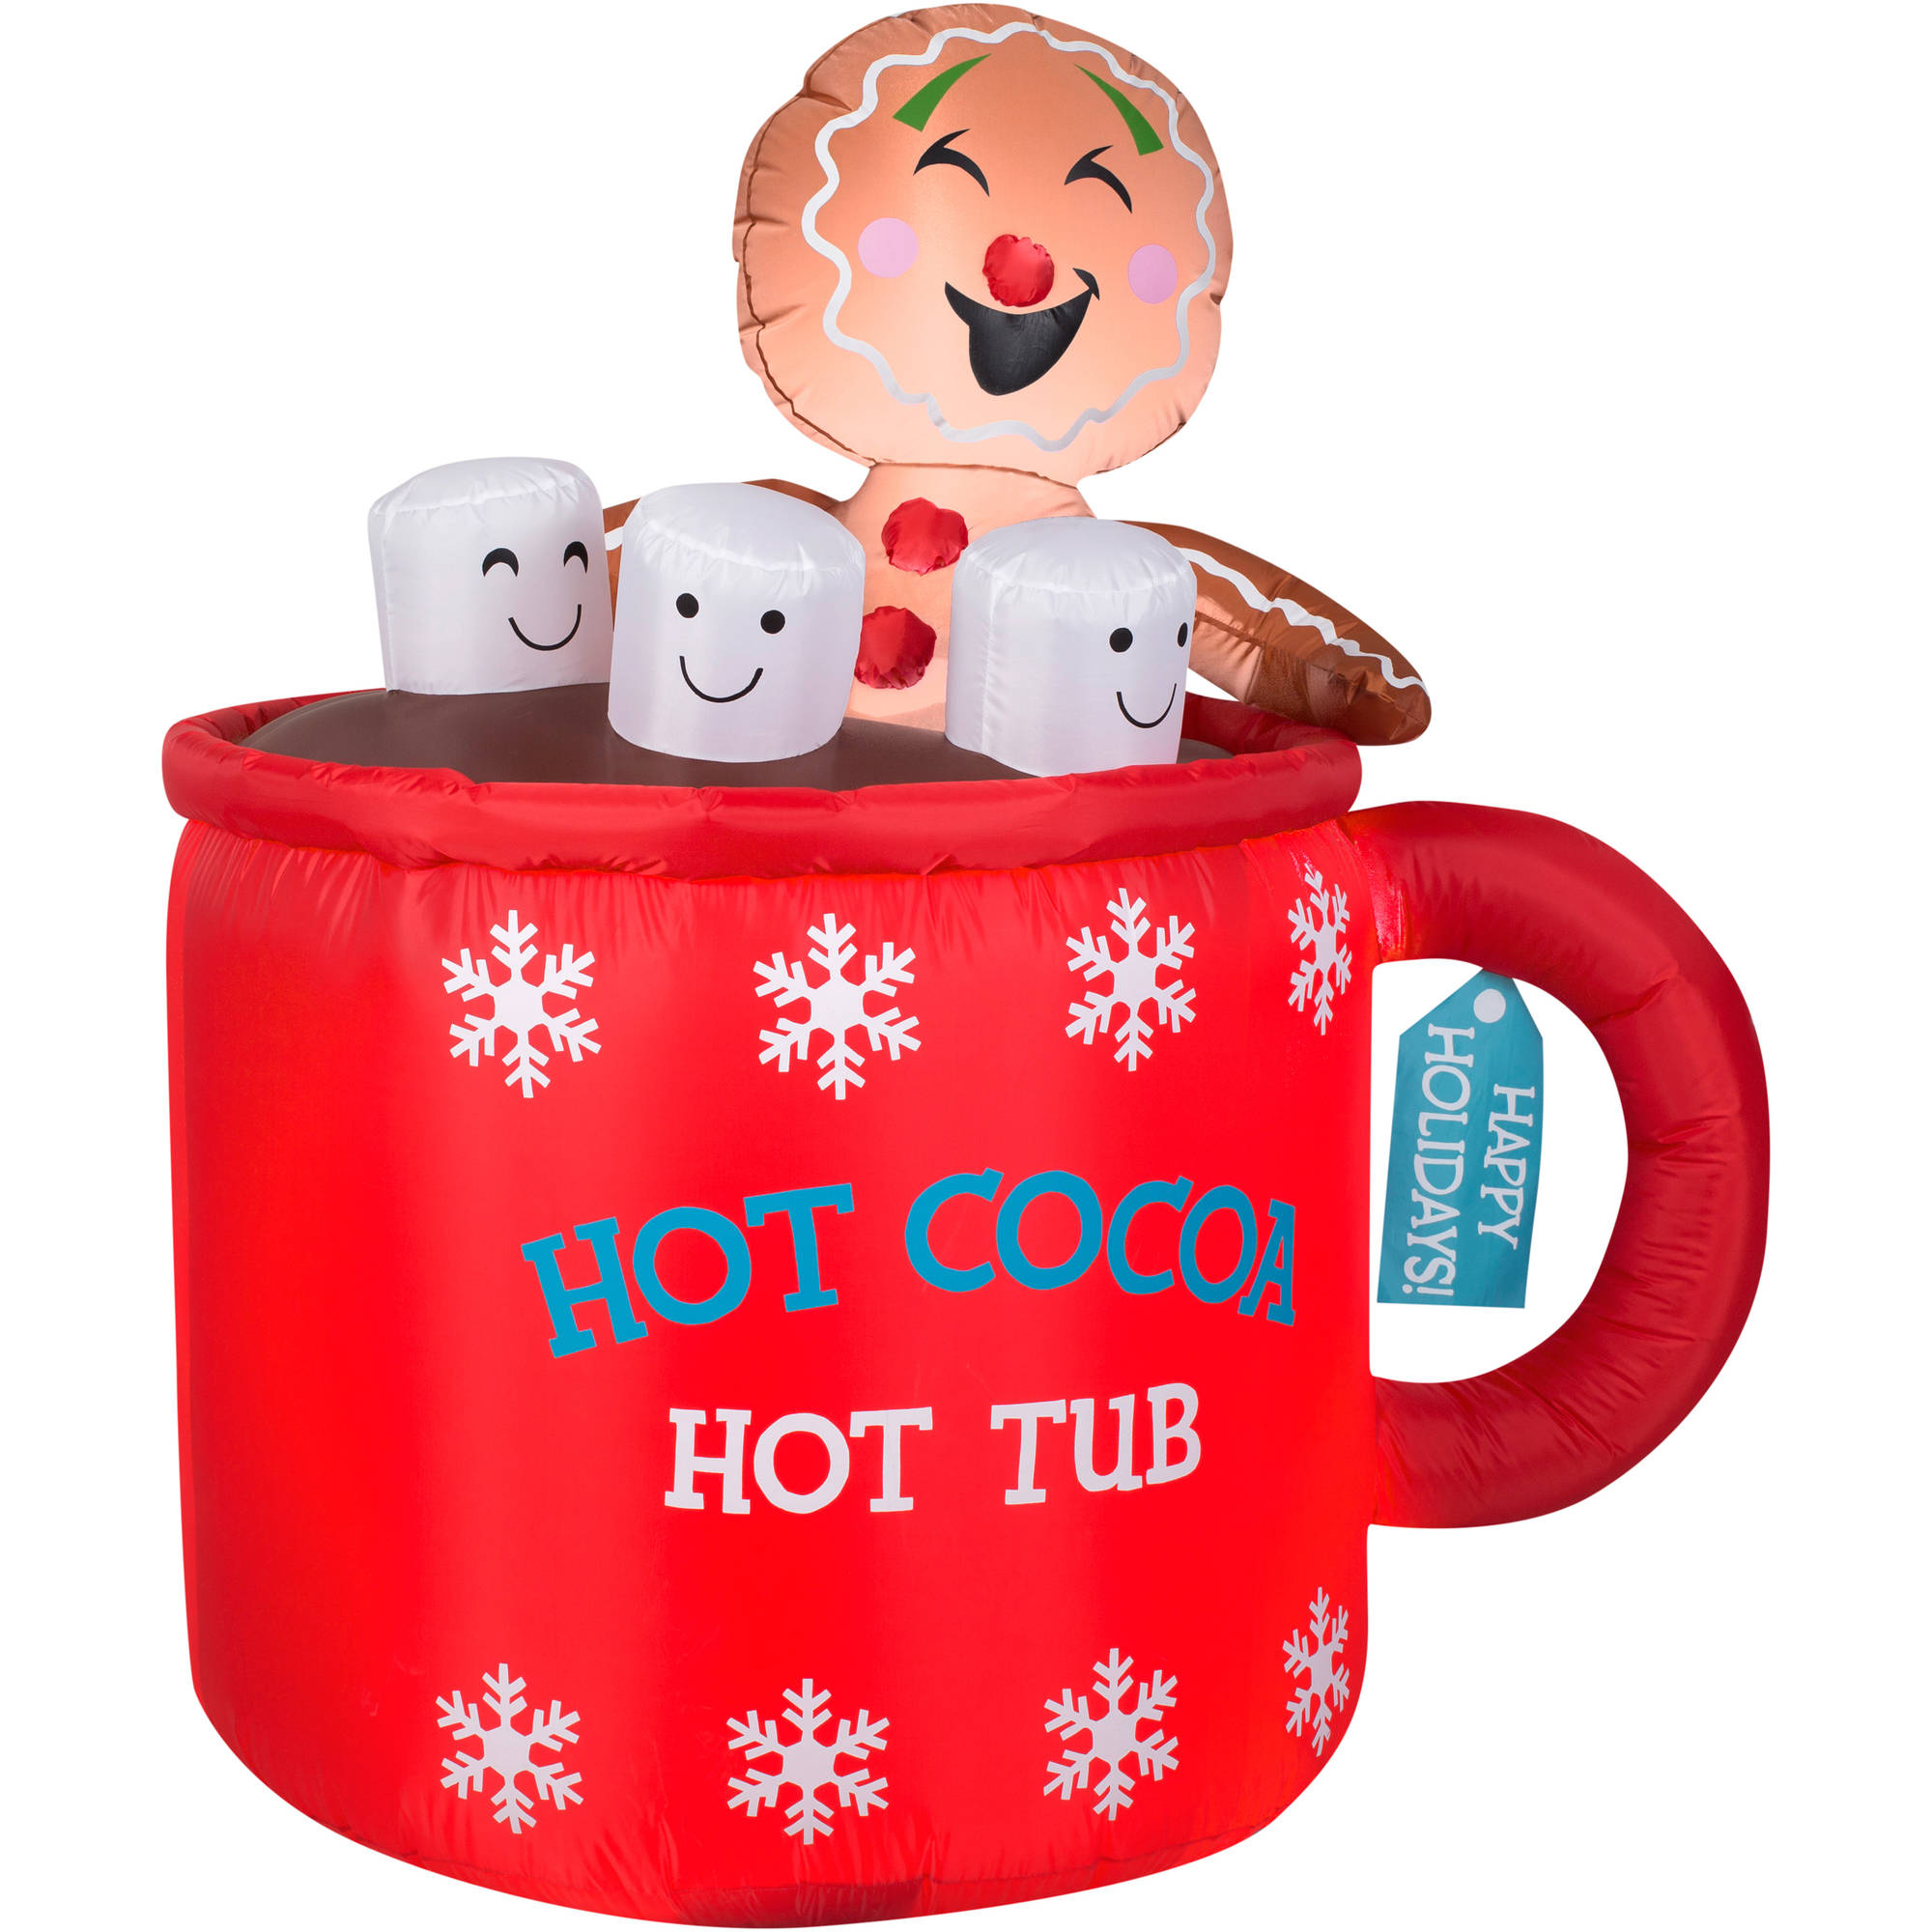 Strange Gemmy Airblown Christmas Inflatables 4396Quot Gingerbread In Mug Of Easy Diy Christmas Decorations Tissureus